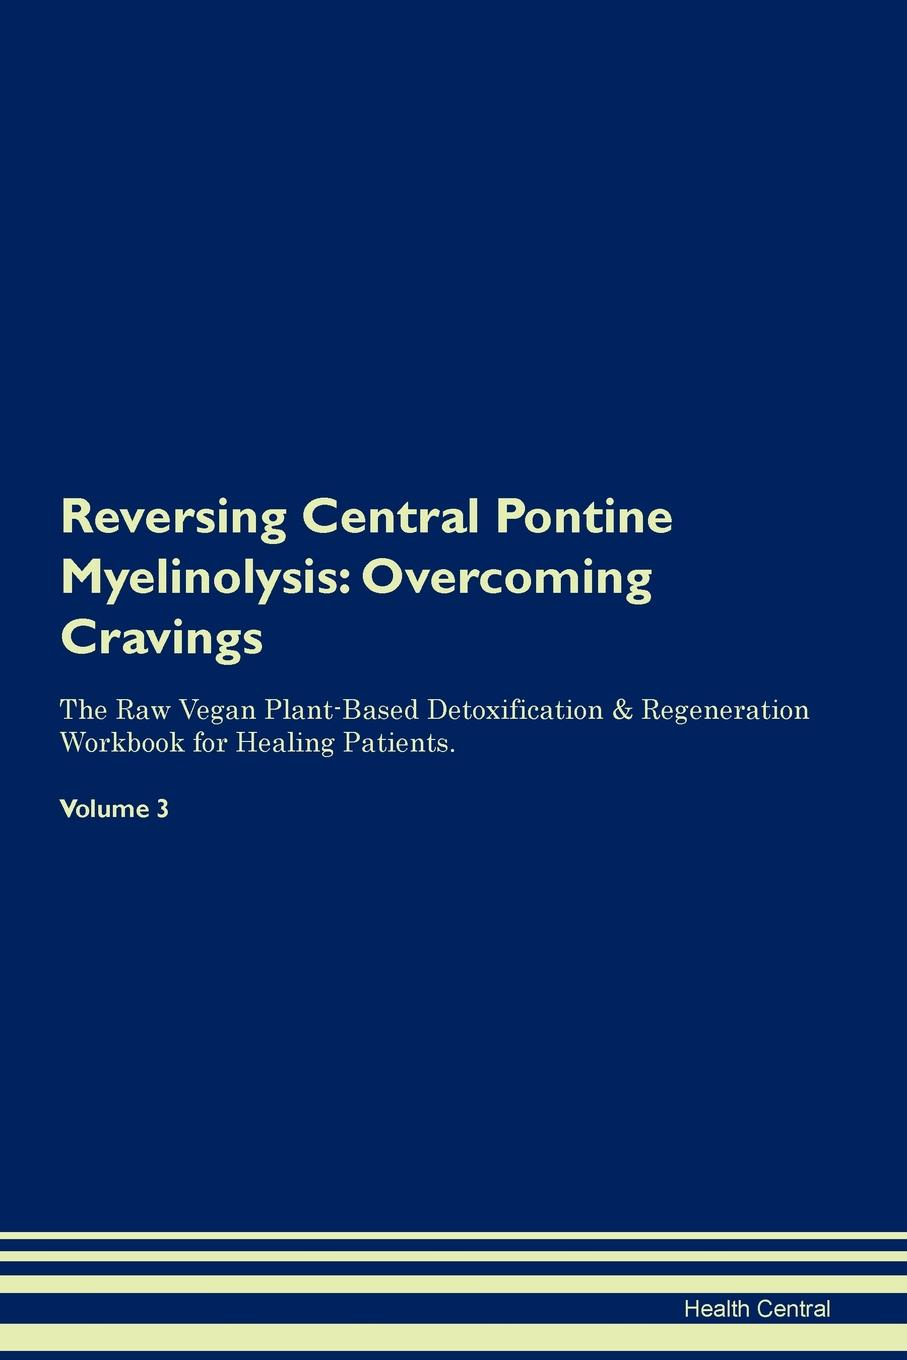 Фото - Health Central Reversing Central Pontine Myelinolysis. Overcoming Cravings The Raw Vegan Plant-Based Detoxification & Regeneration Workbook for Healing Patients. Volume 3 health central reversing spinocerebellar ataxia overcoming cravings the raw vegan plant based detoxification